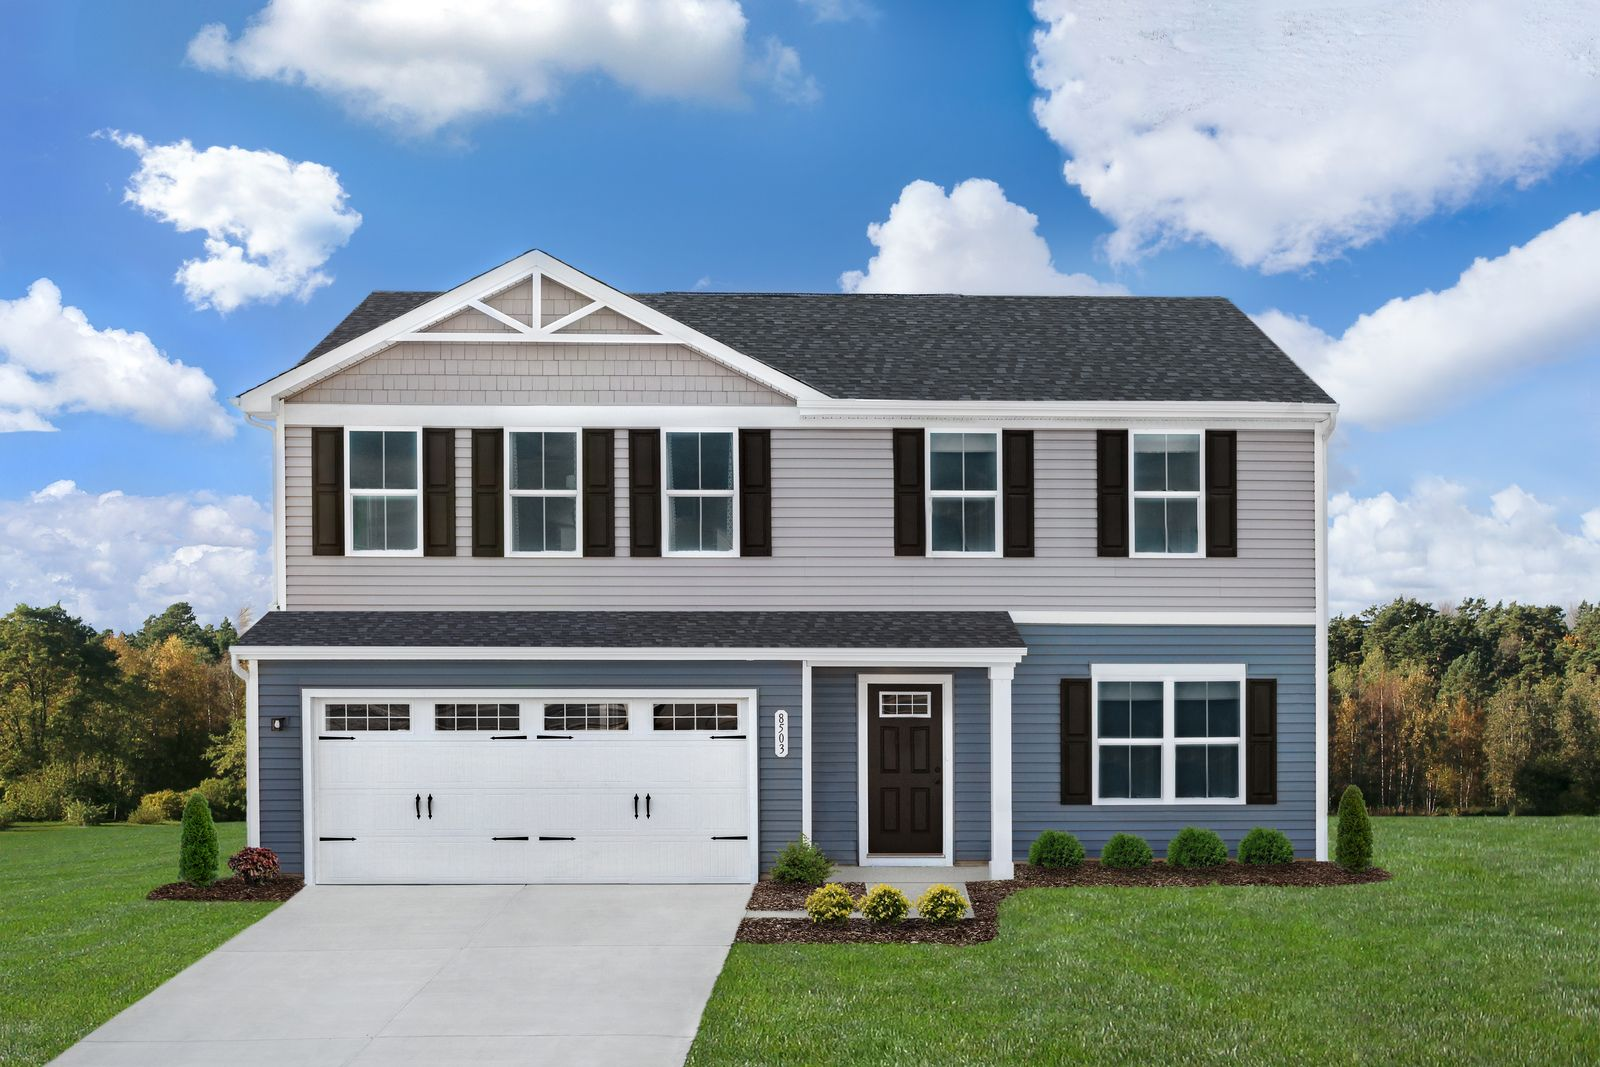 Welcome to Meadows at Balmorea:With all appliances & landscaping included, just move in and start enjoying. Close to Rt. 47 and I-88.Click here to schedule yoursame day one-on-one, phone or video appointment!